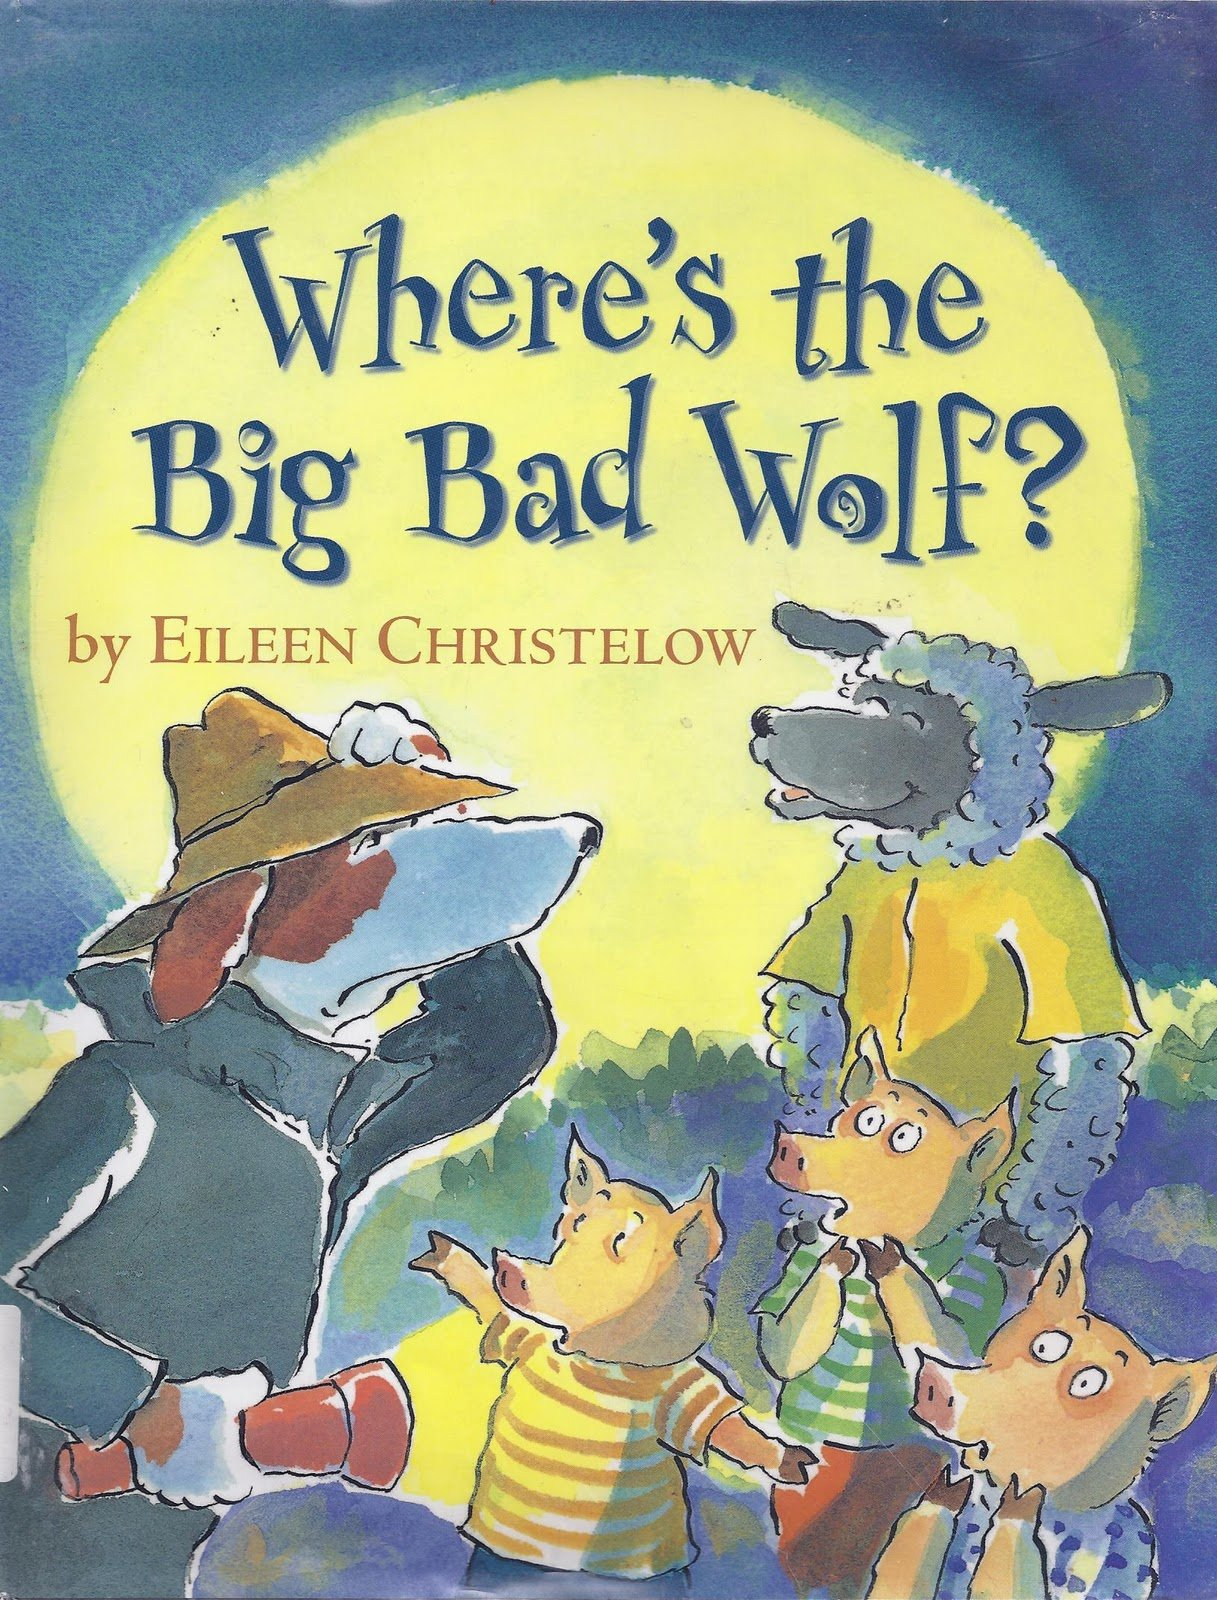 Where's the Big Bad Wolf by Eileen Christelow